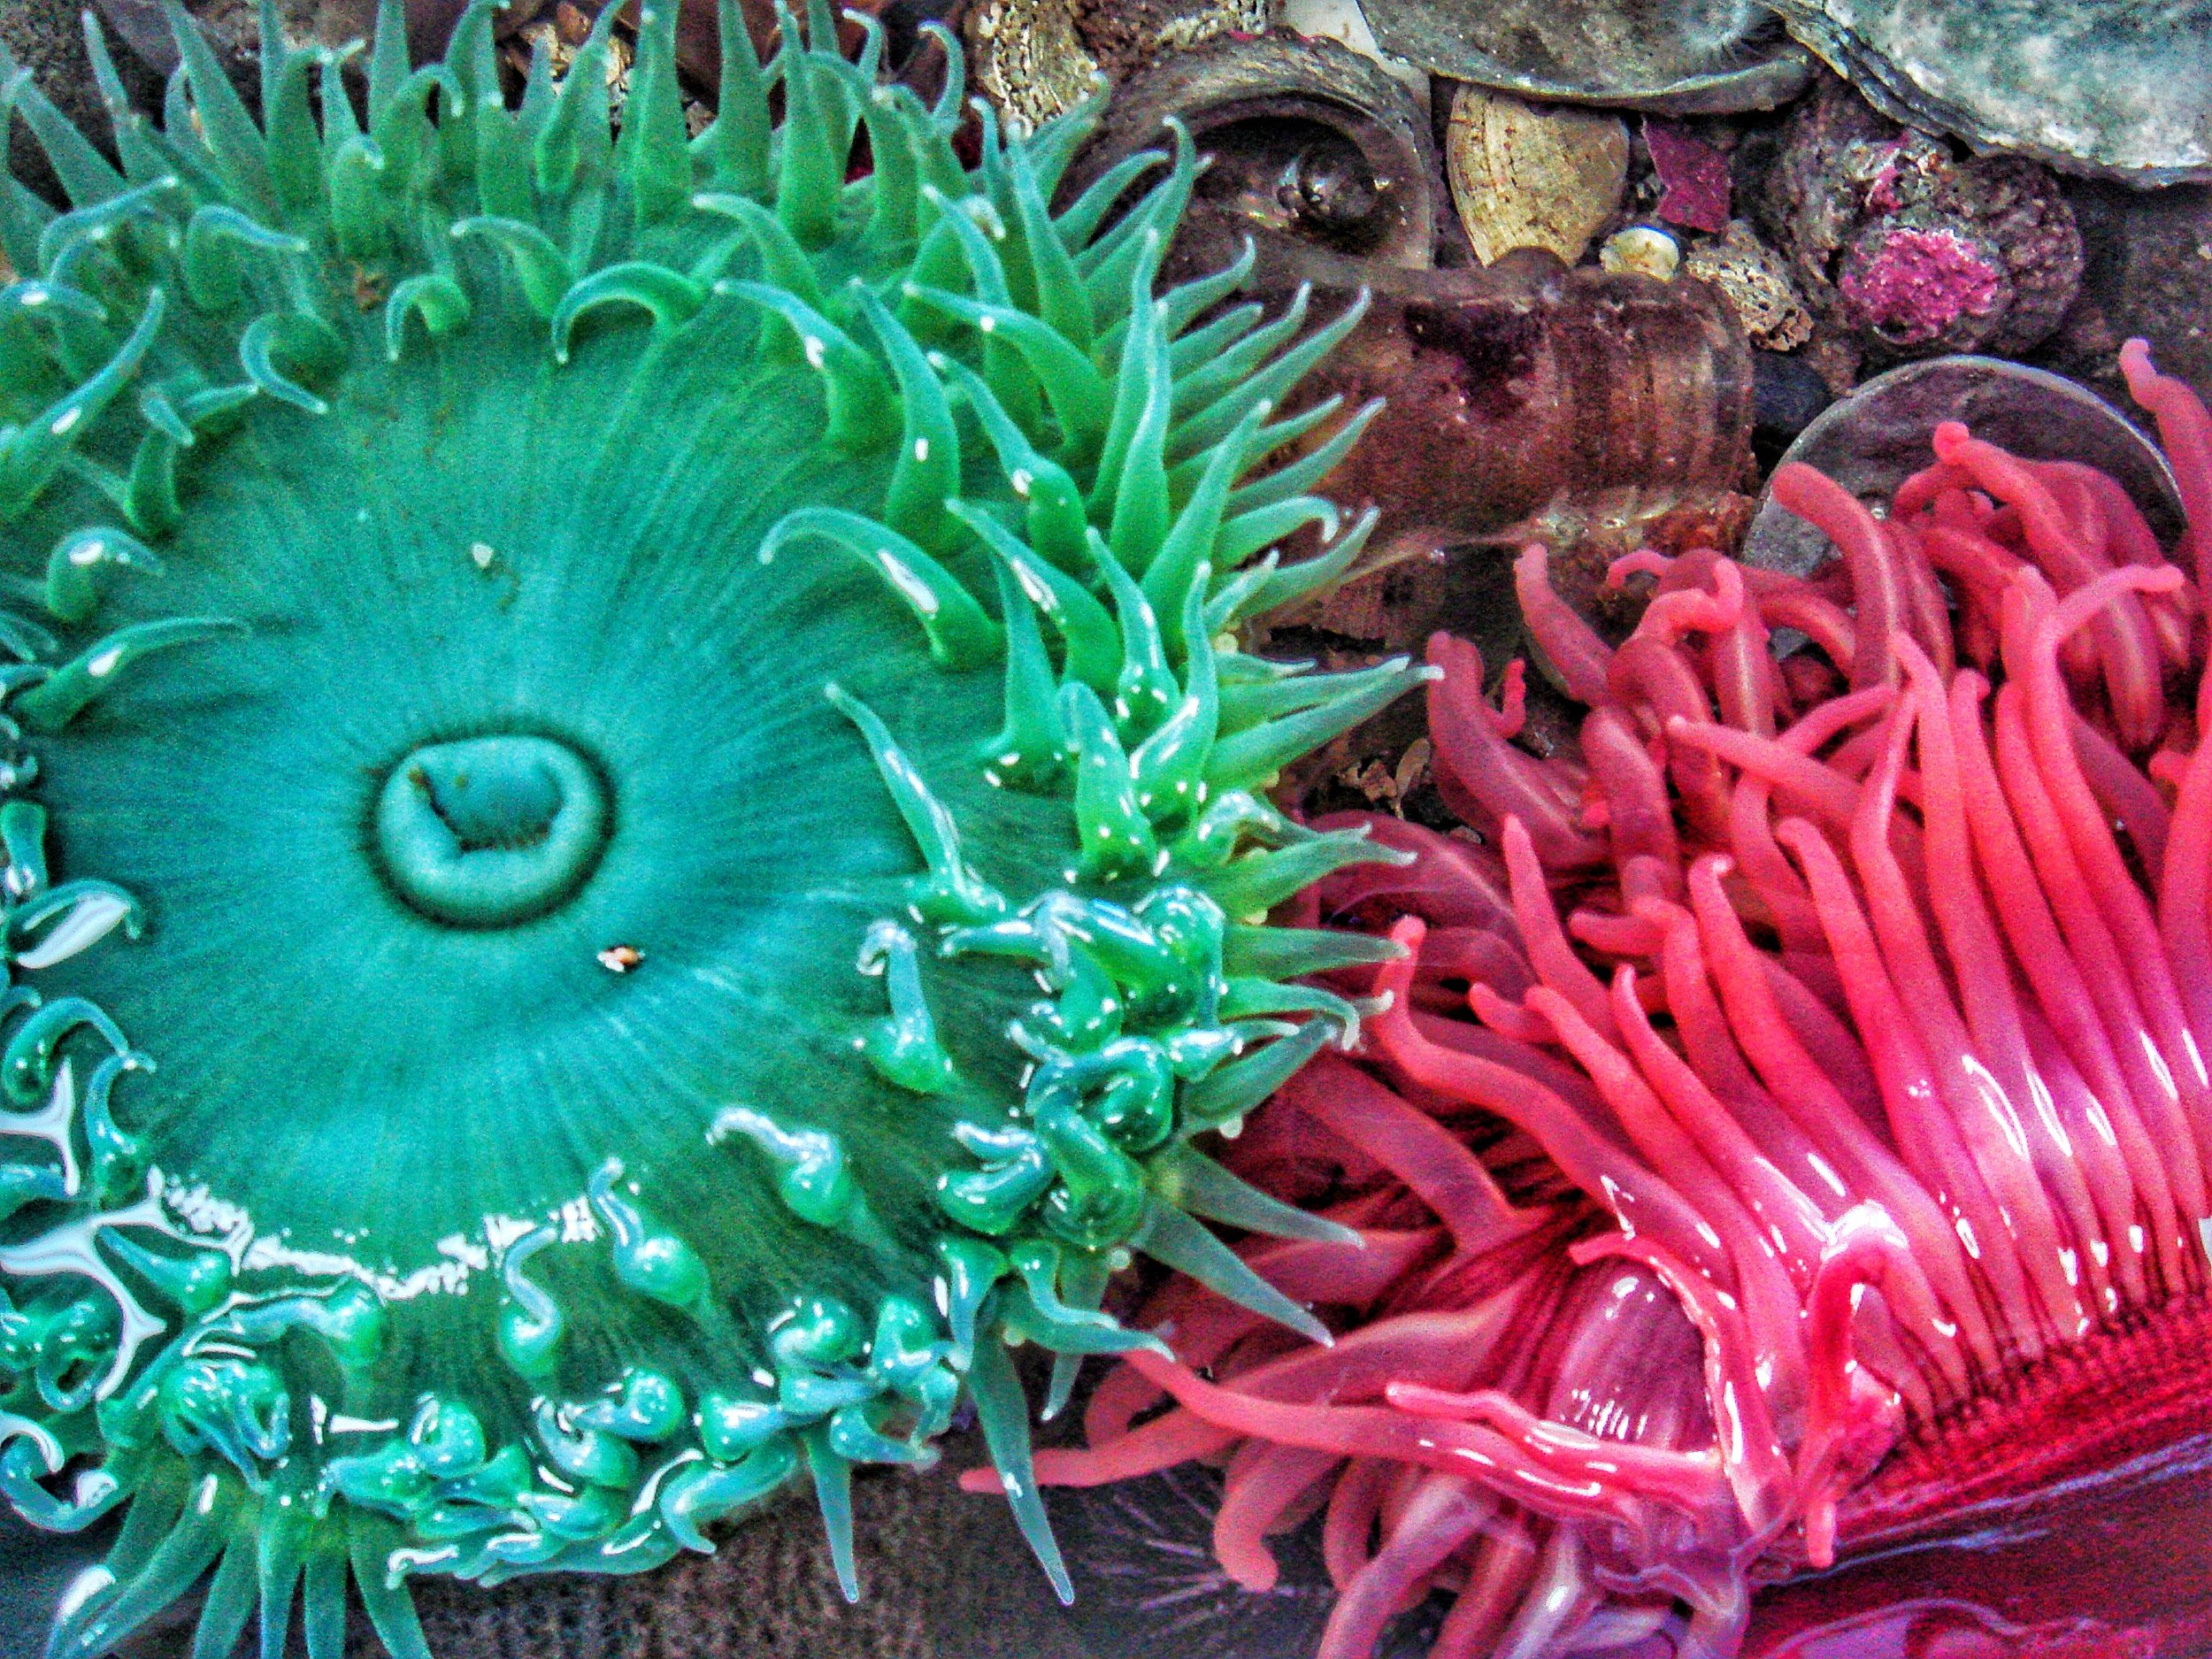 A couple of different species of sea anemone in a rock pool in Bamfield, British Columbia, Canada. The image has been enhanced to show some of the details of the anemone's body. Credit Samantha Andrews/Ocean Oculus